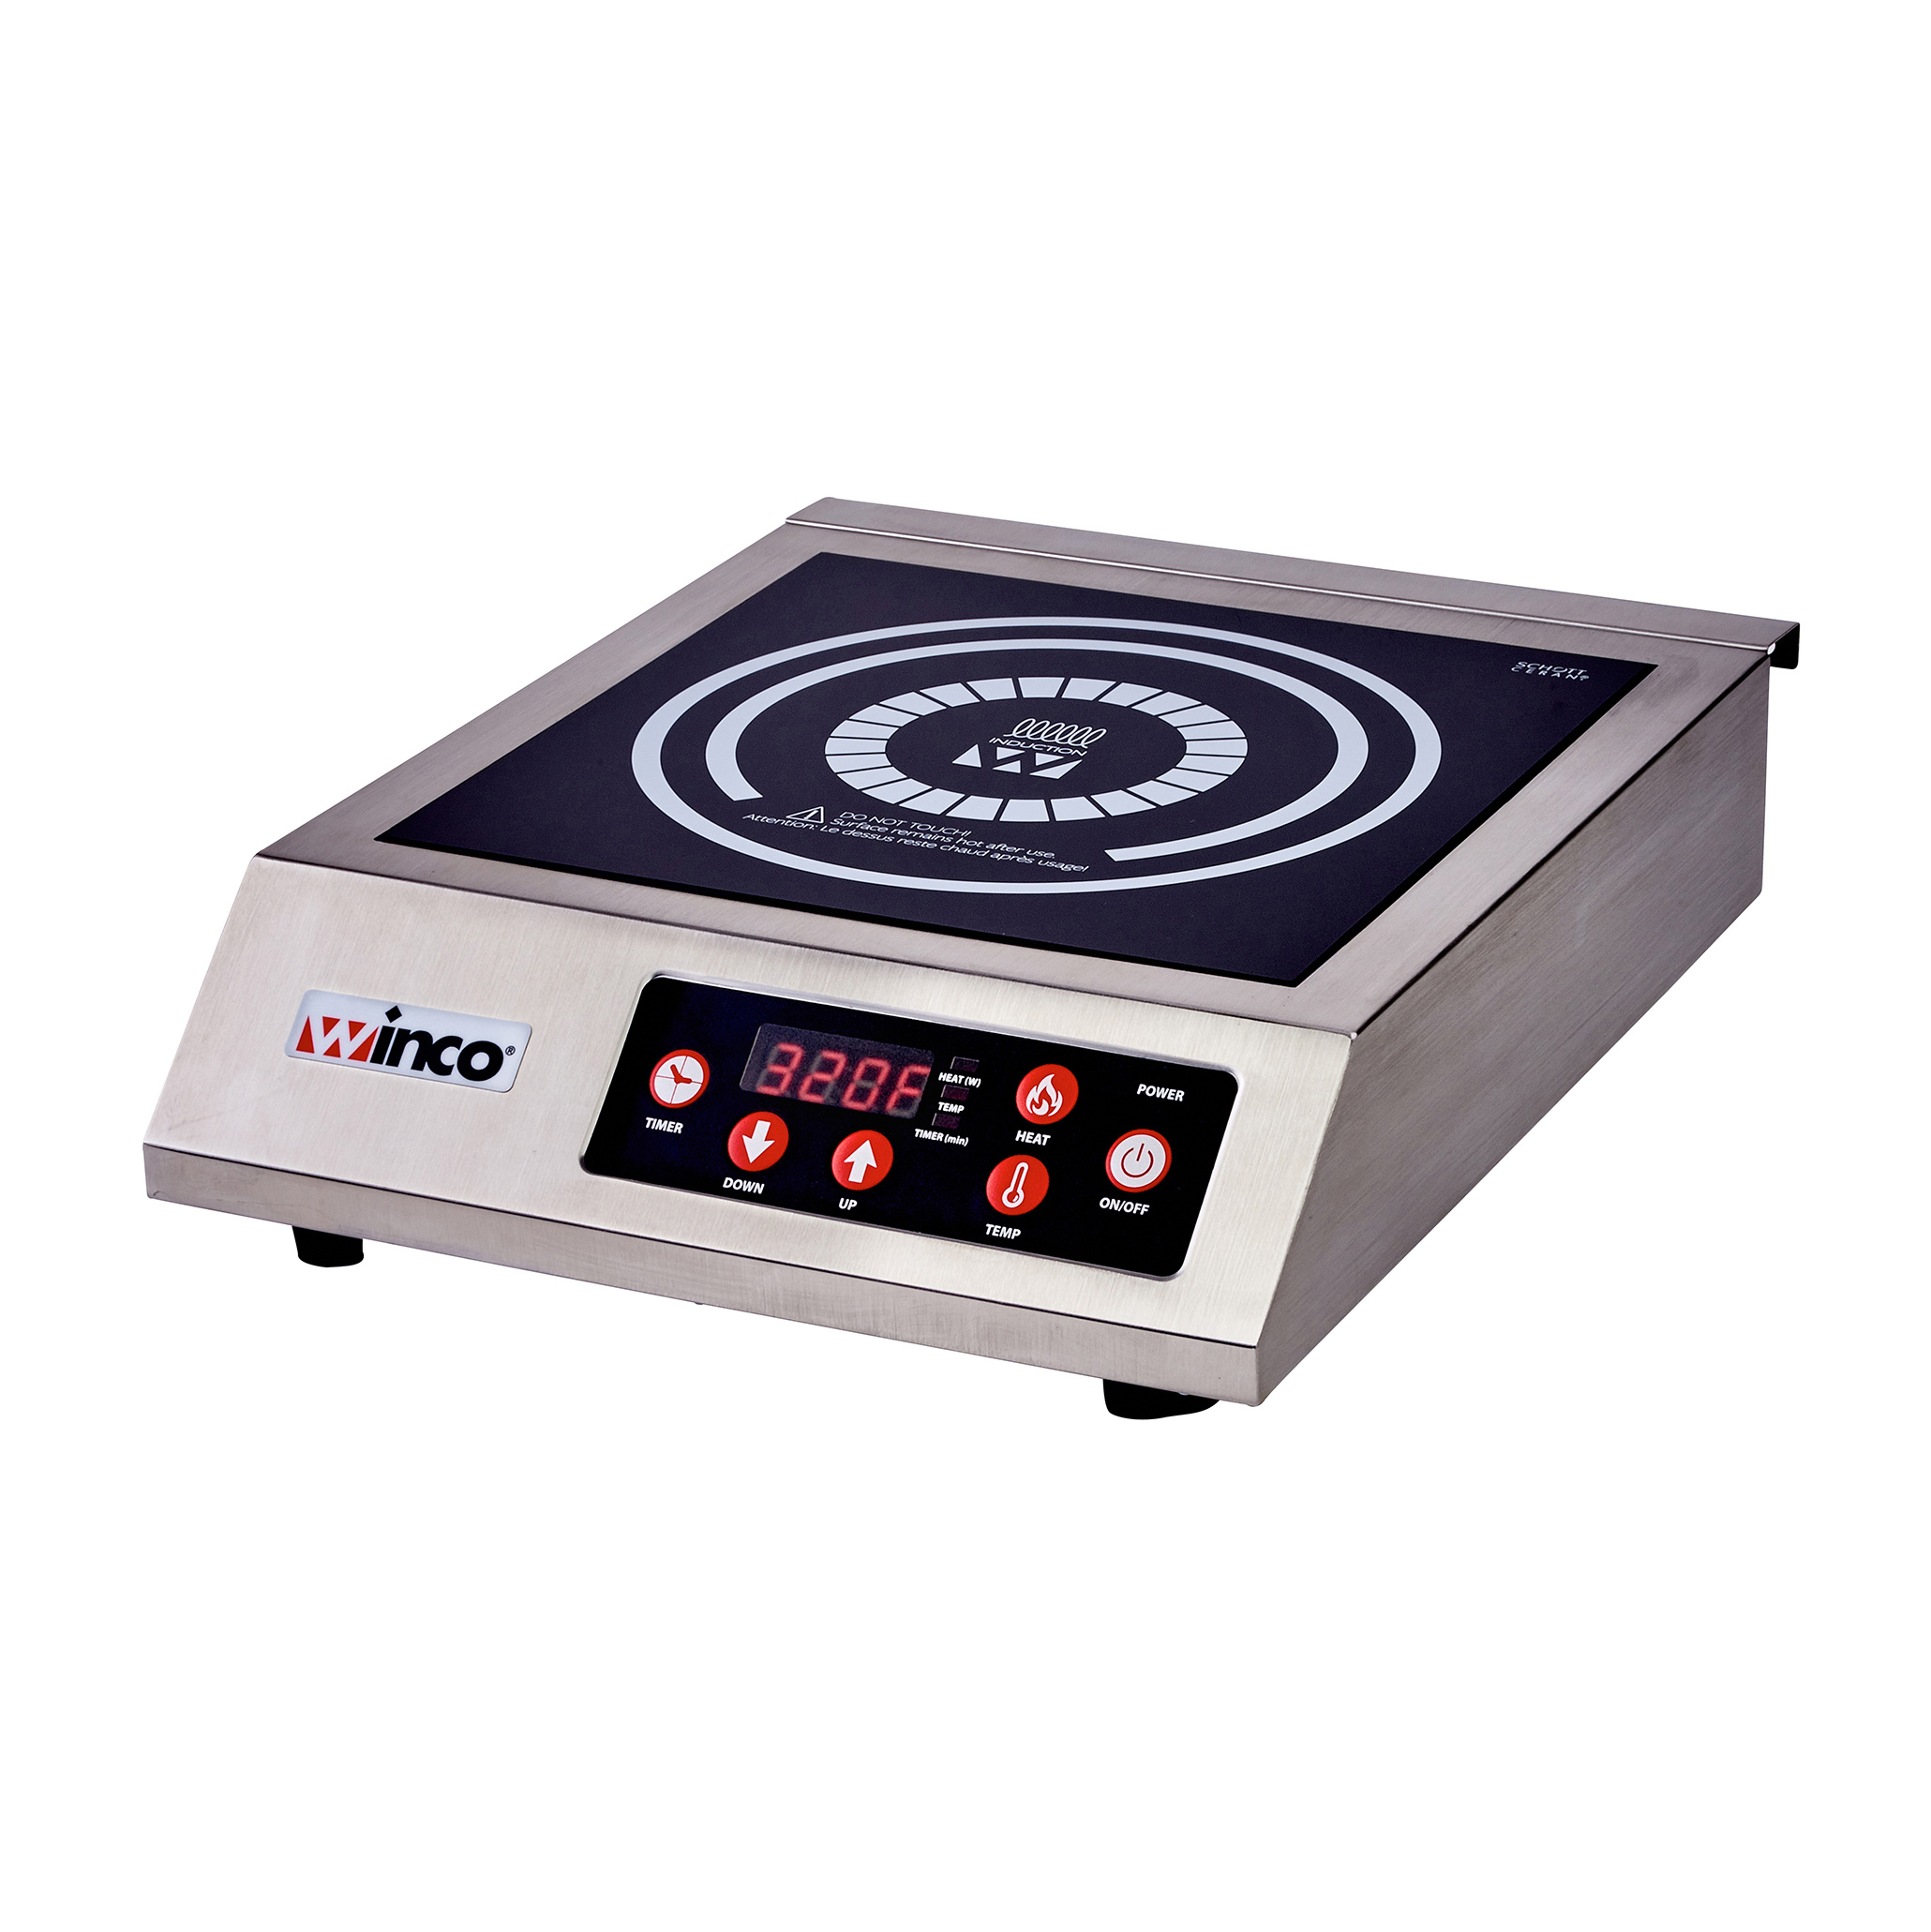 Winco EIC-400 induction range, countertop